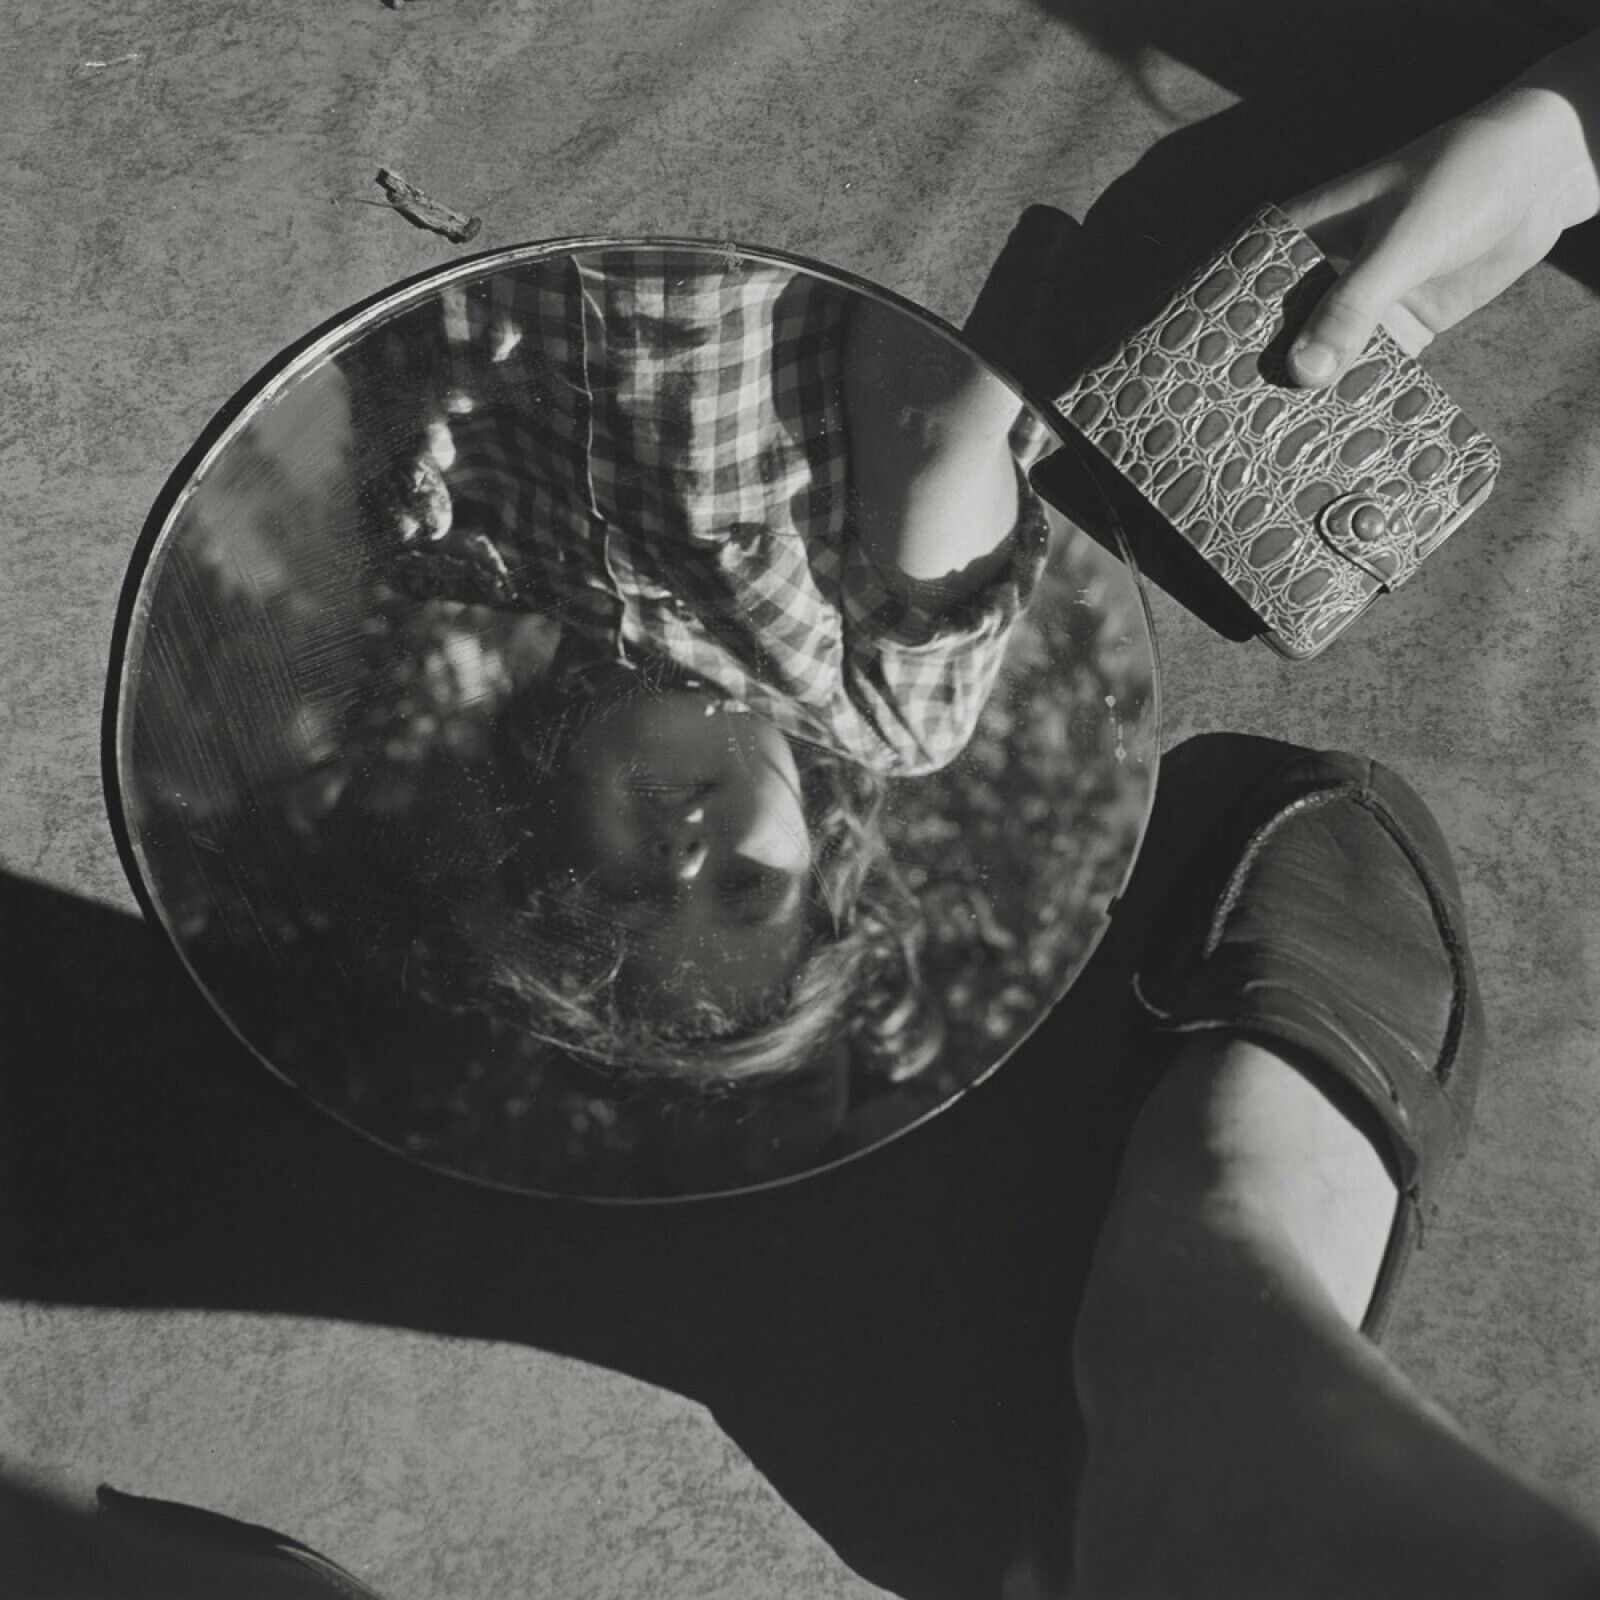 """""""New York 1953""""  de Vivian MAIER © Estate of Vivian Maier, Courtesy of Maloof Collection and Howard Greenberg Gallery, NY"""